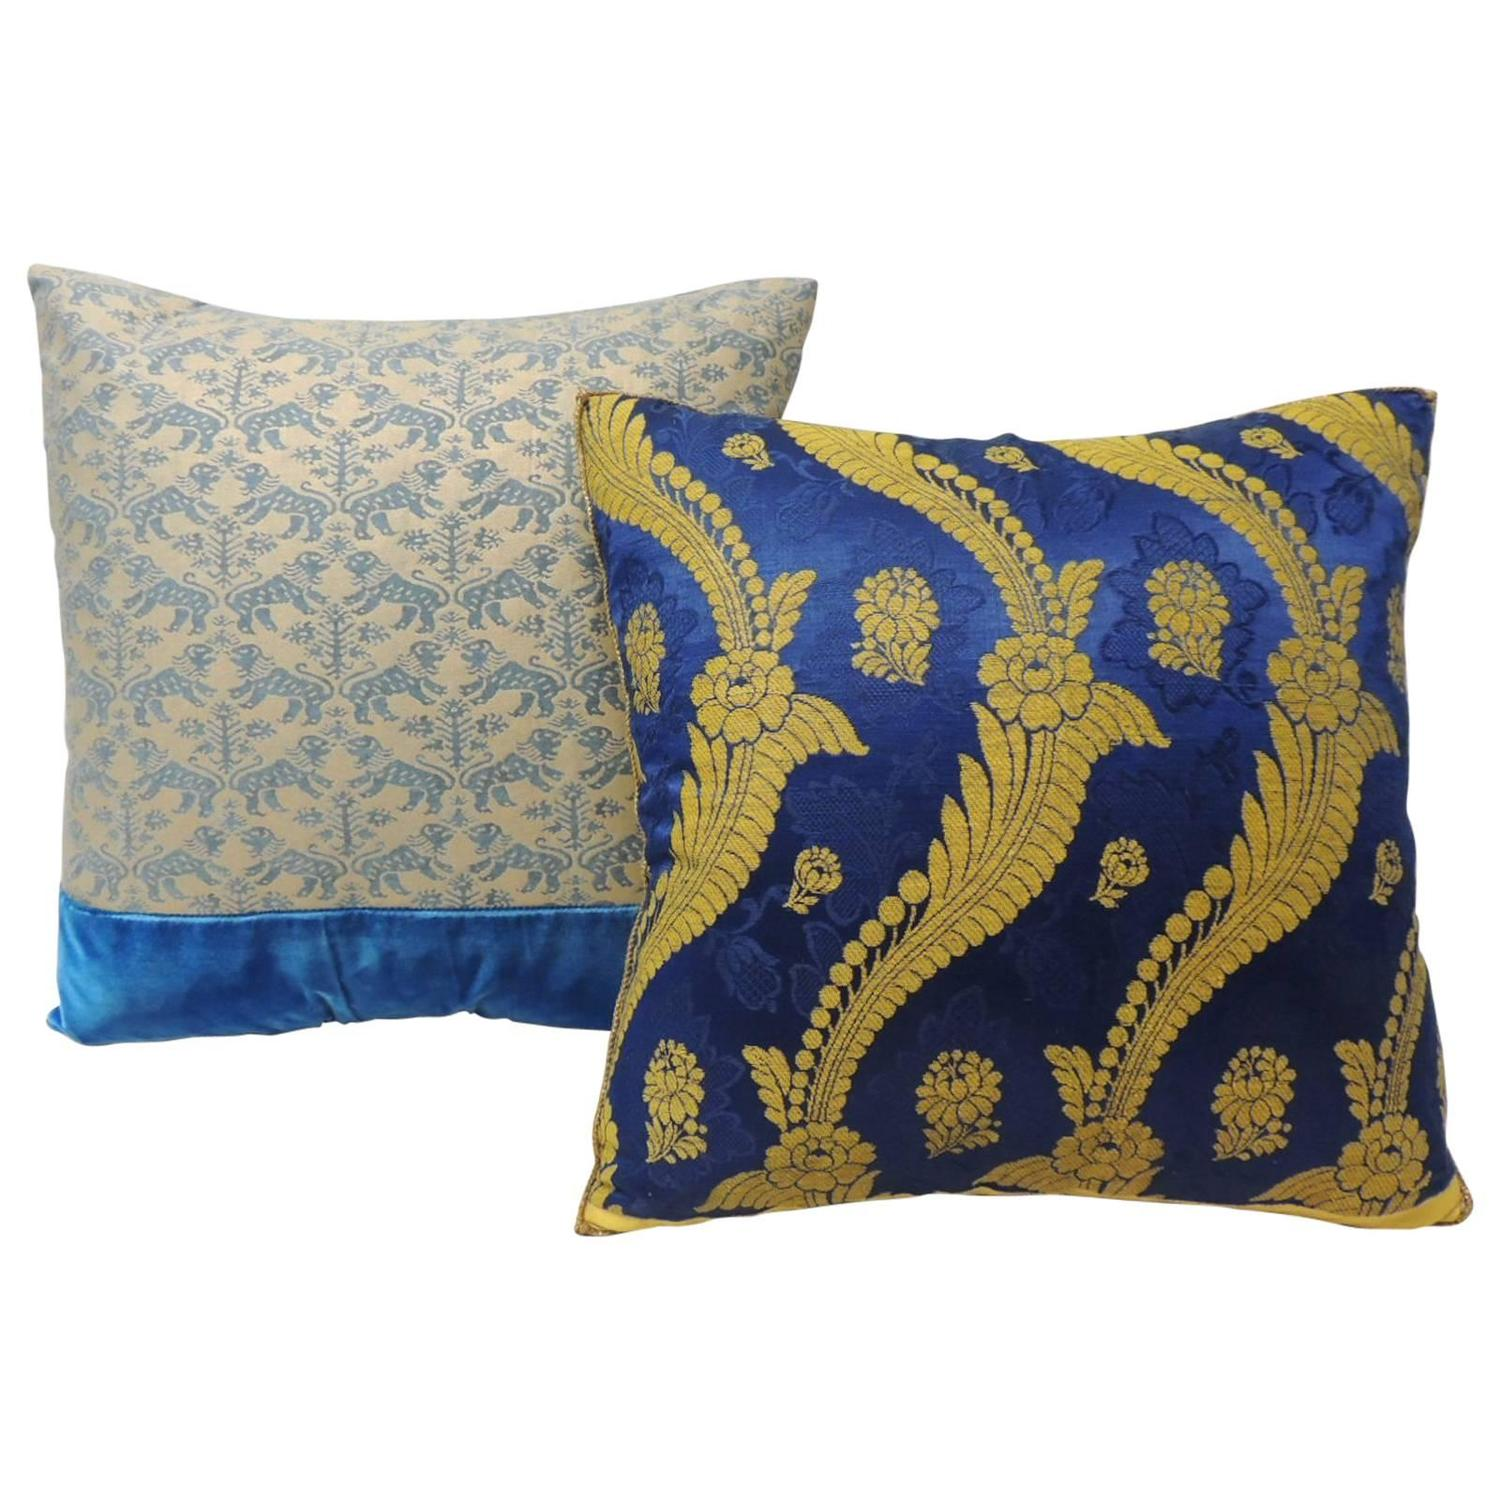 Pair of Royal Blue Decorative Pillows For Sale at 1stdibs